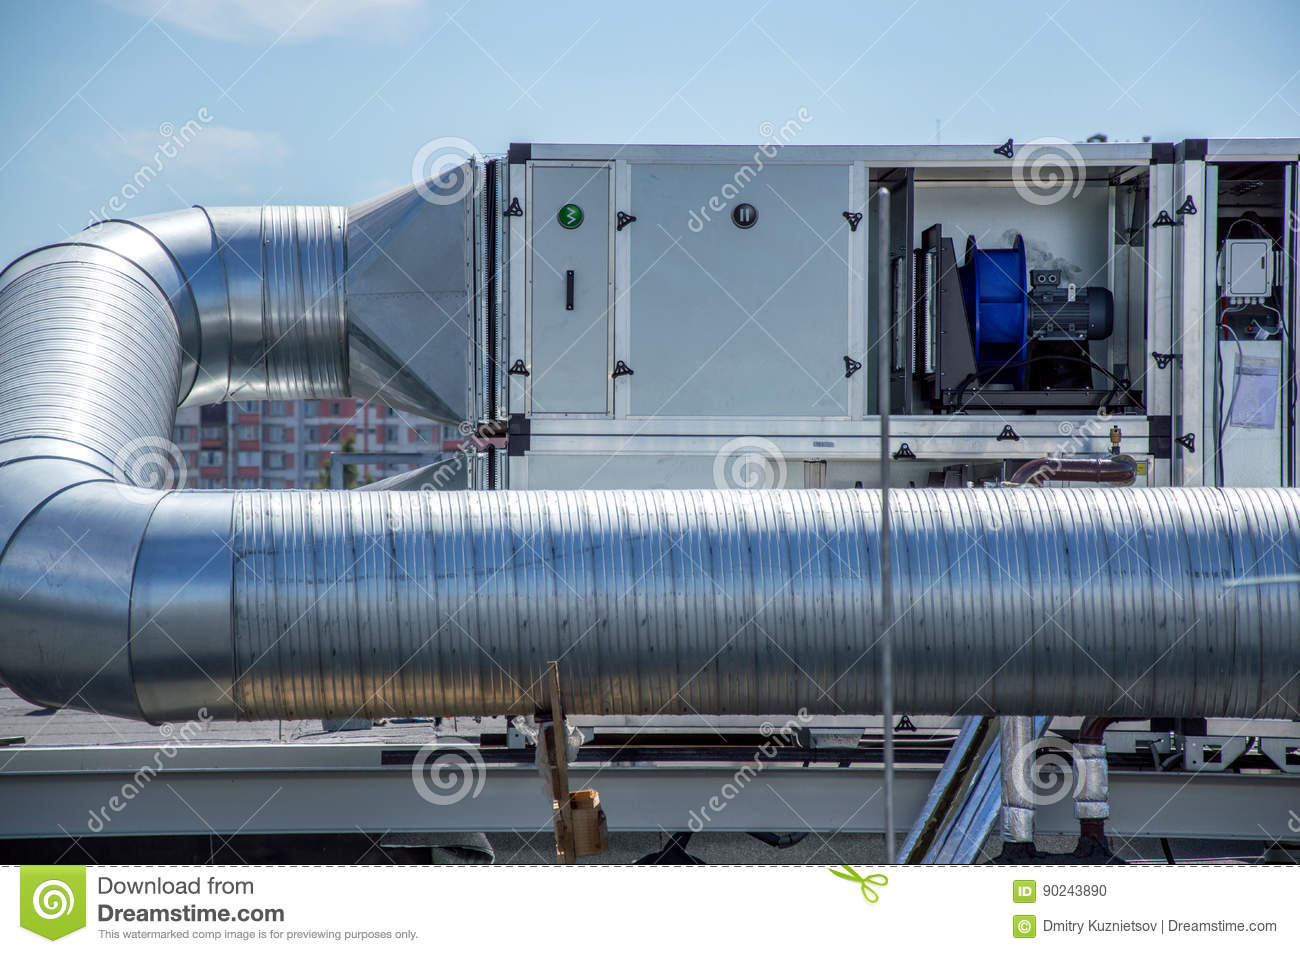 Air Handling Unit For The Central Ventilation System On